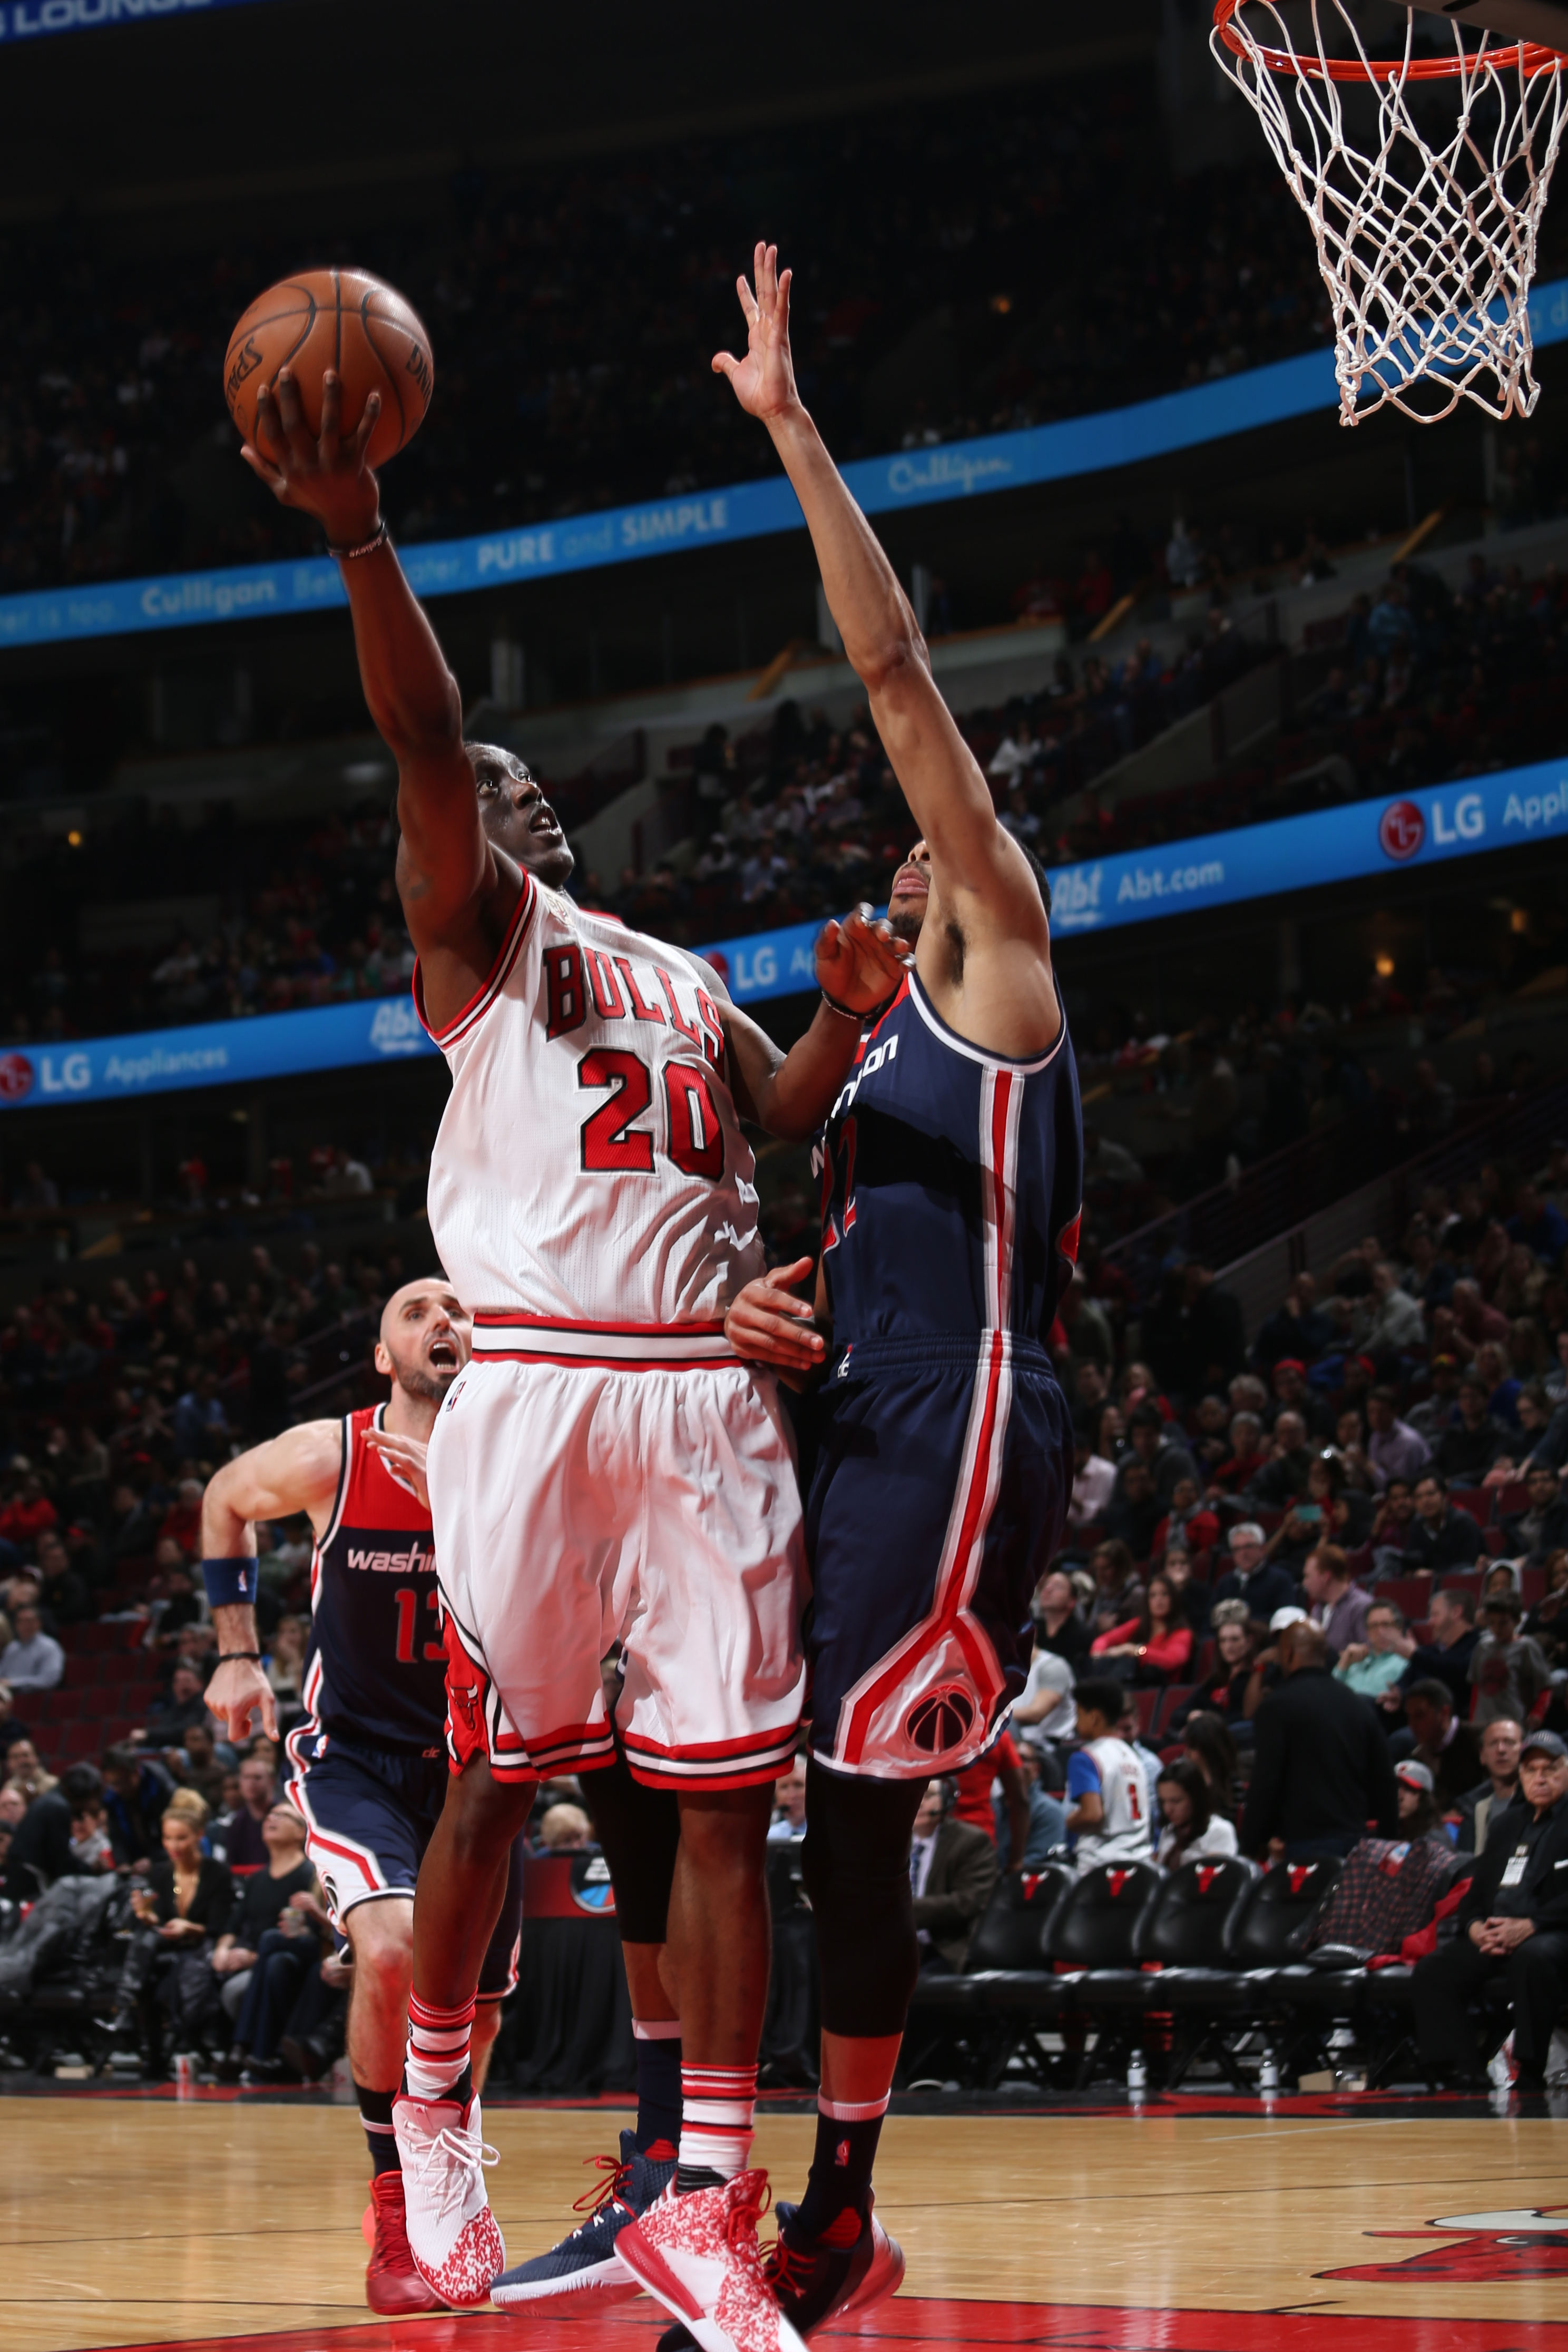 CHICAGO, IL - FEBRUARY 24: Tony Snell #20 of the Chicago Bulls goes for the lay up against the Washington Wizards during the game on February 24, 2016 at United Center in Chicago, Illinois. (Photo by Gary Dineen/NBAE via Getty Images)